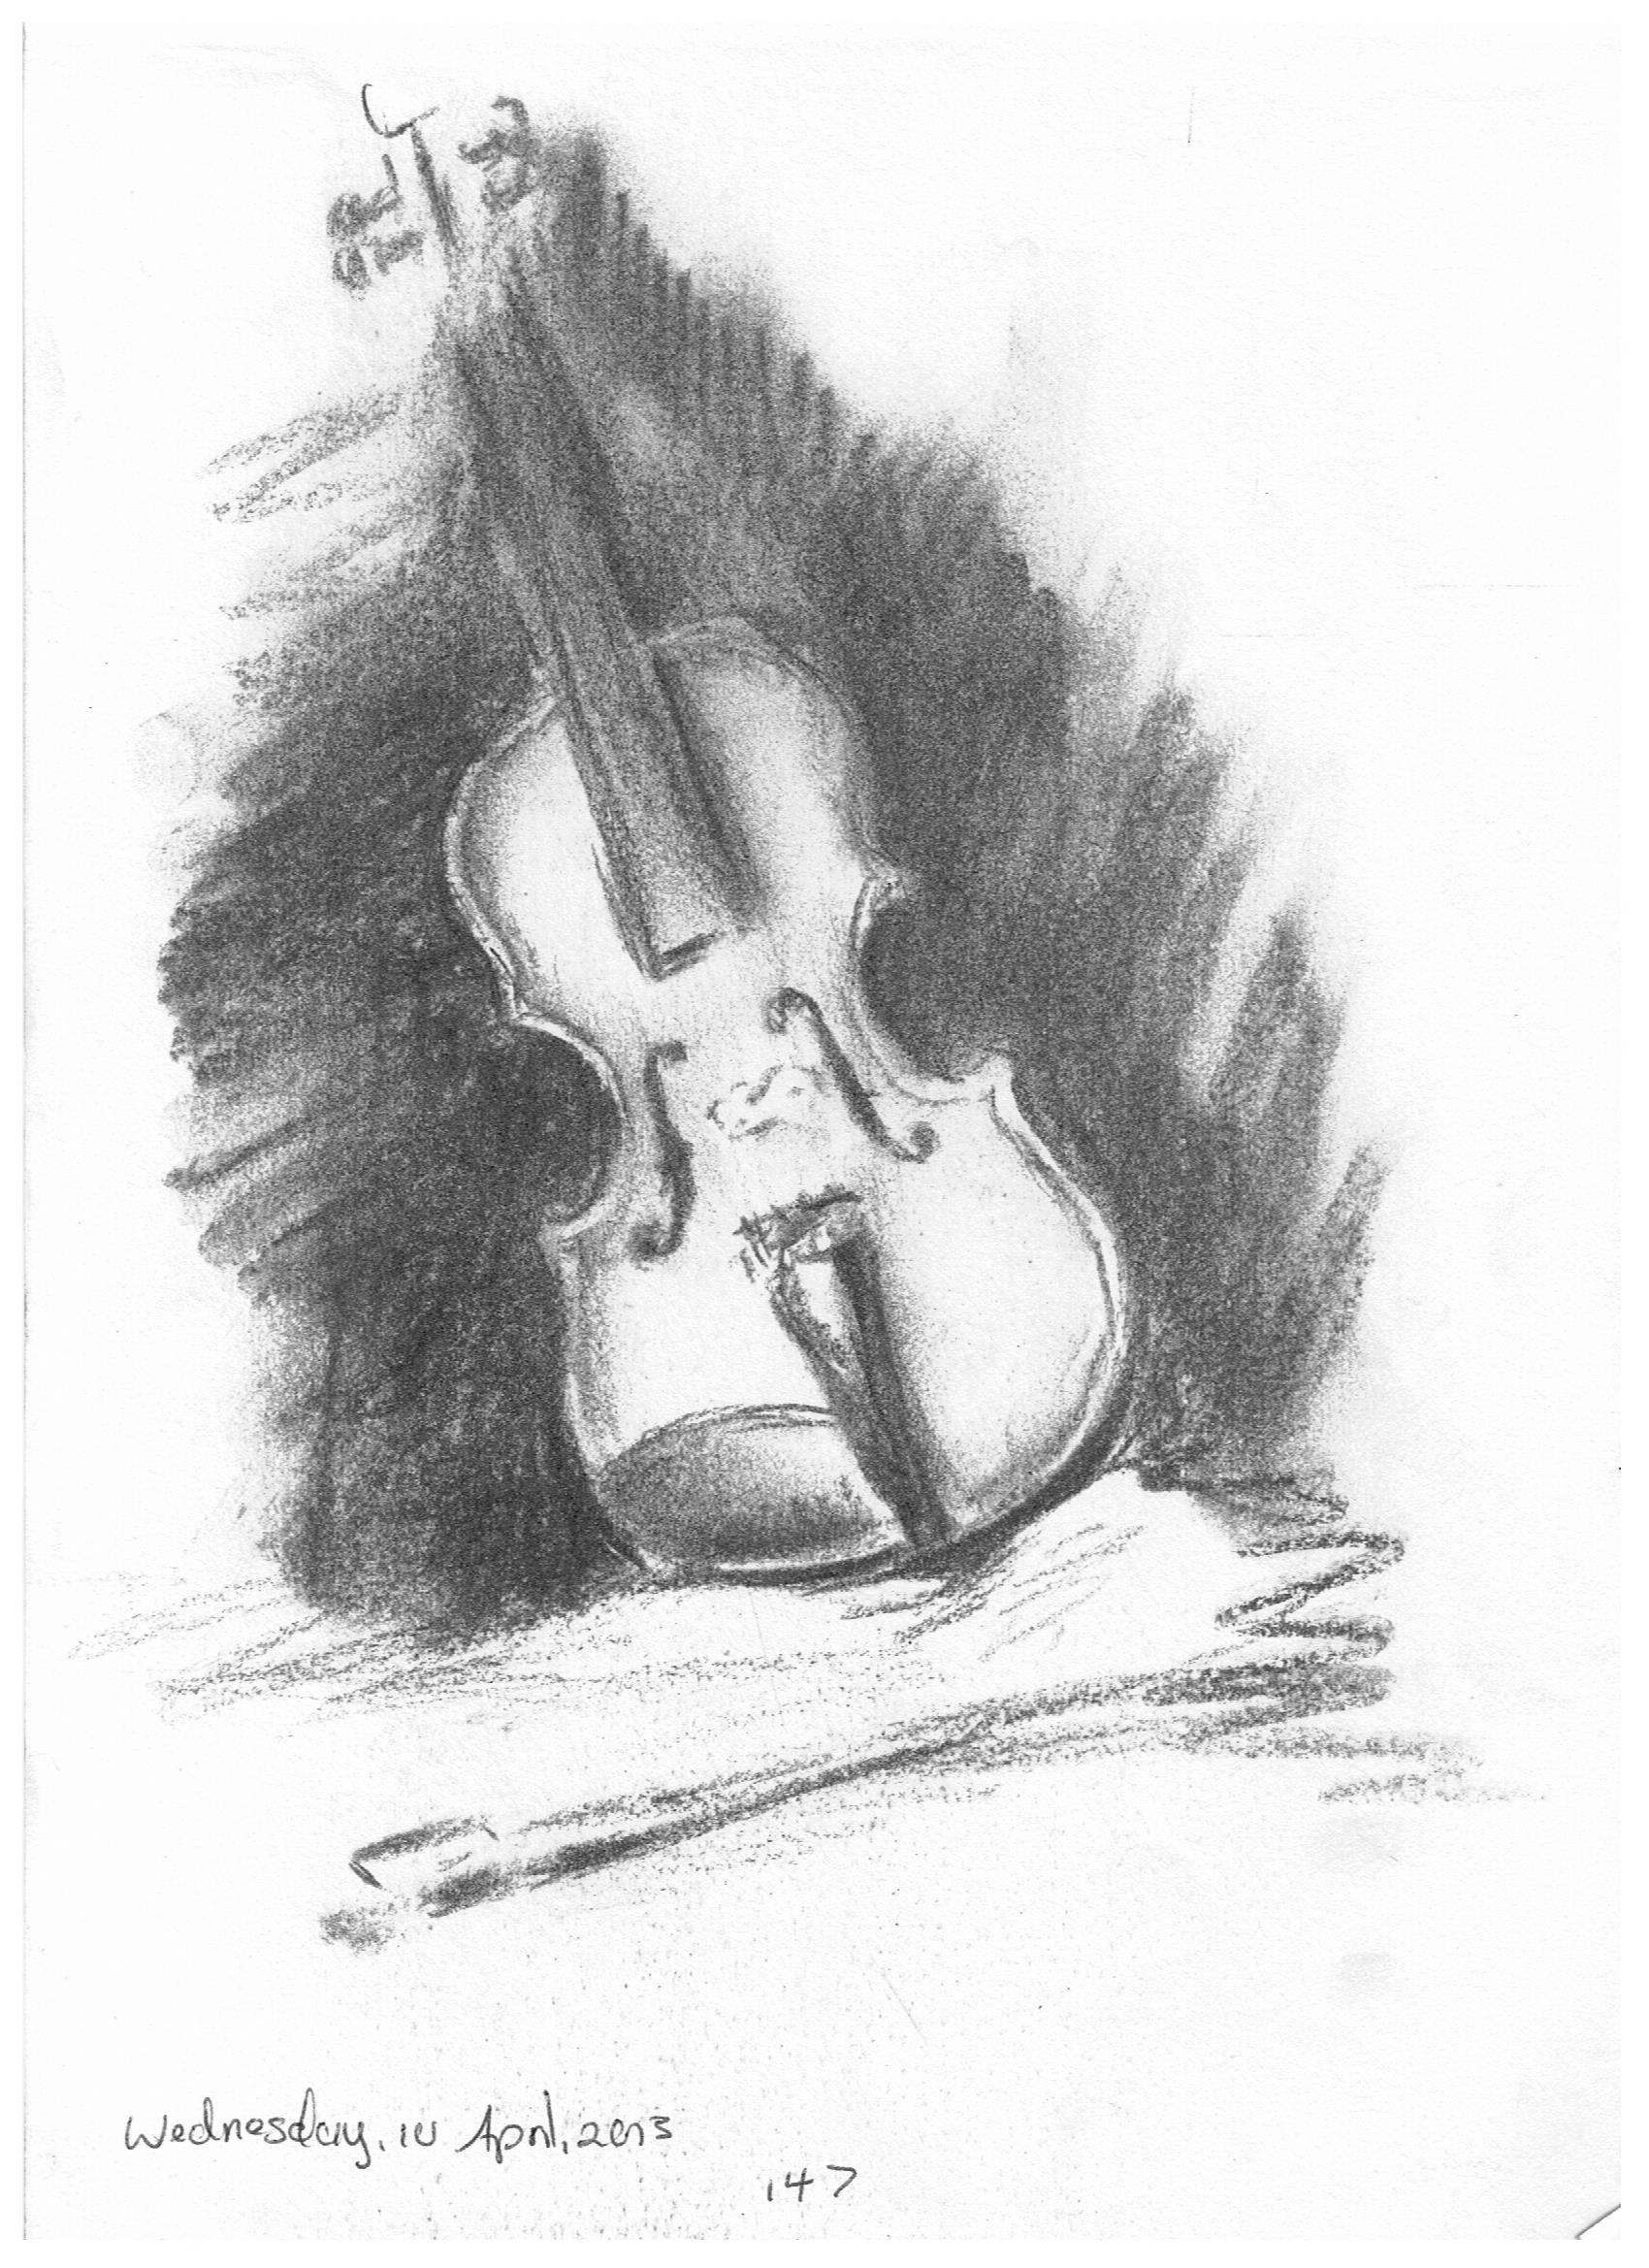 Drawn violinist realistic In 147 in drawing of